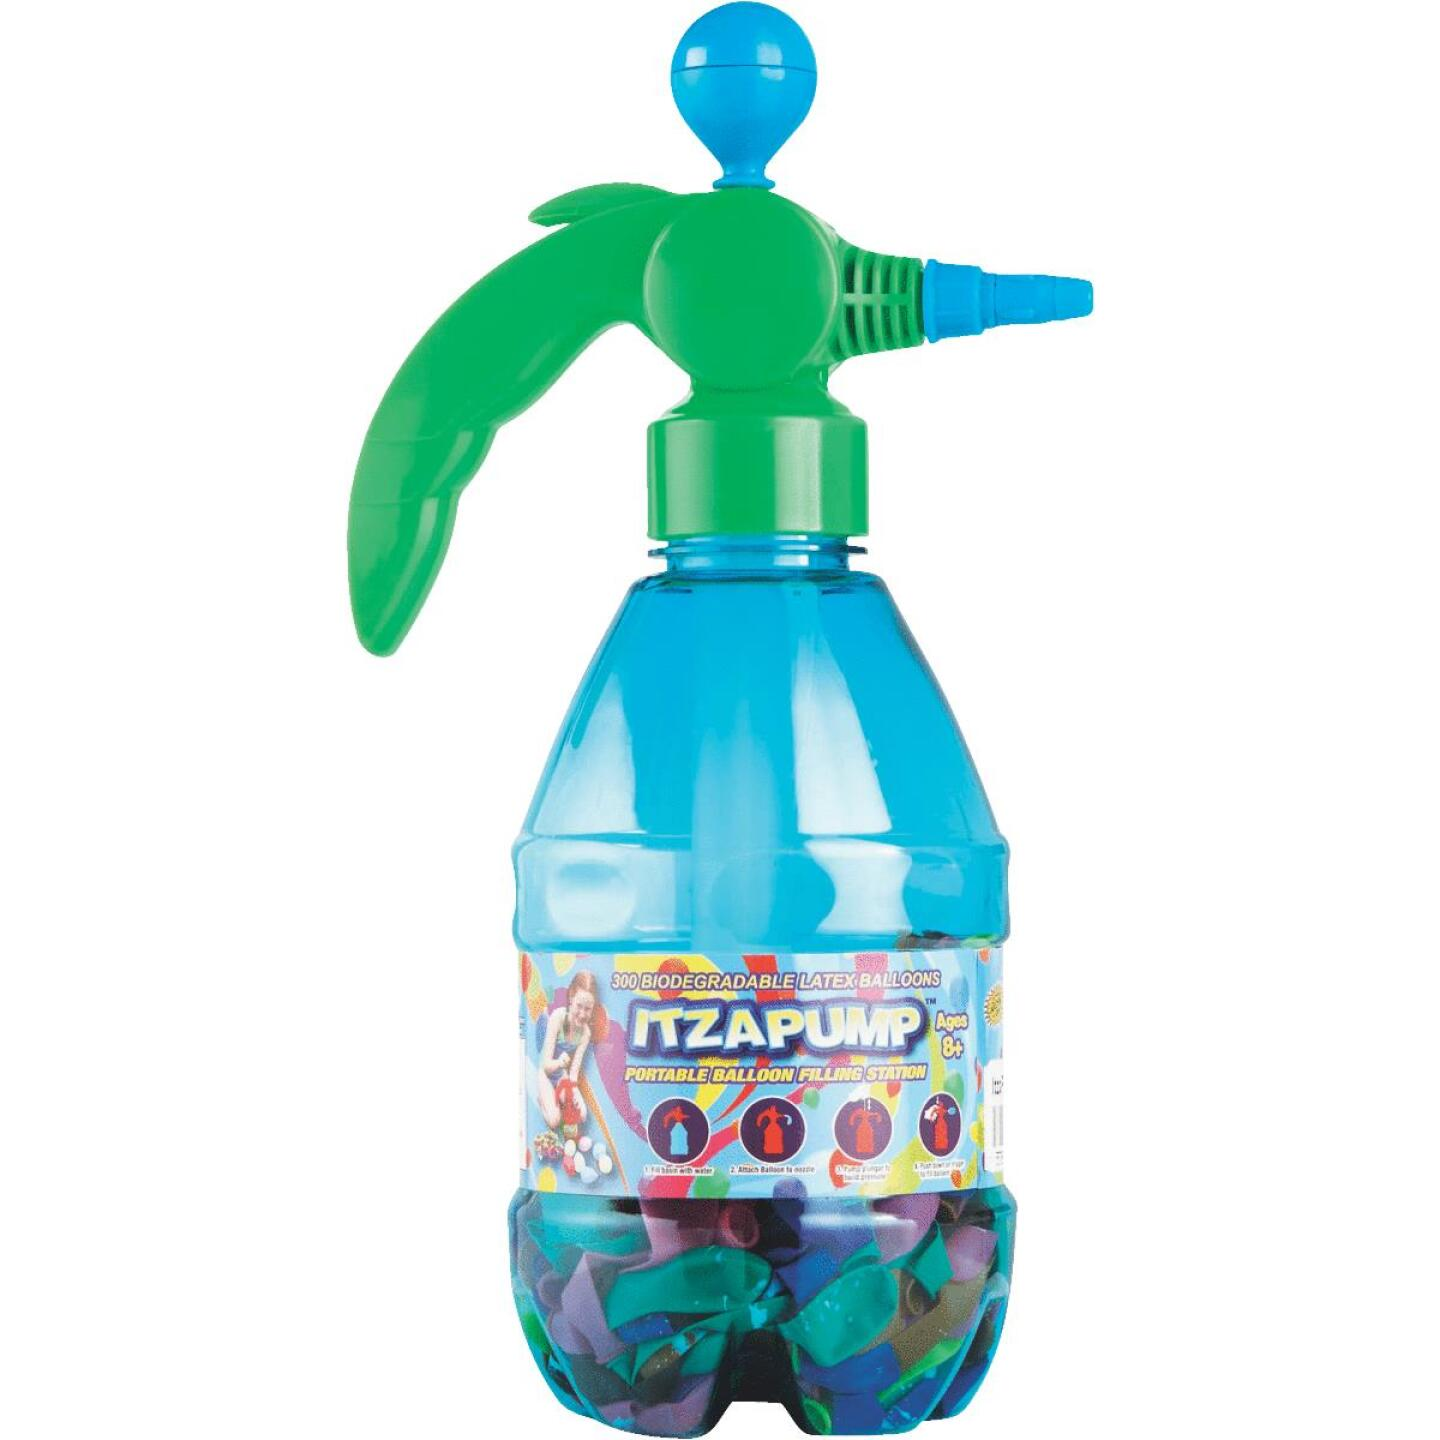 Water Sports ItzaPump Water Balloon Pump with 300 Balloons Image 2